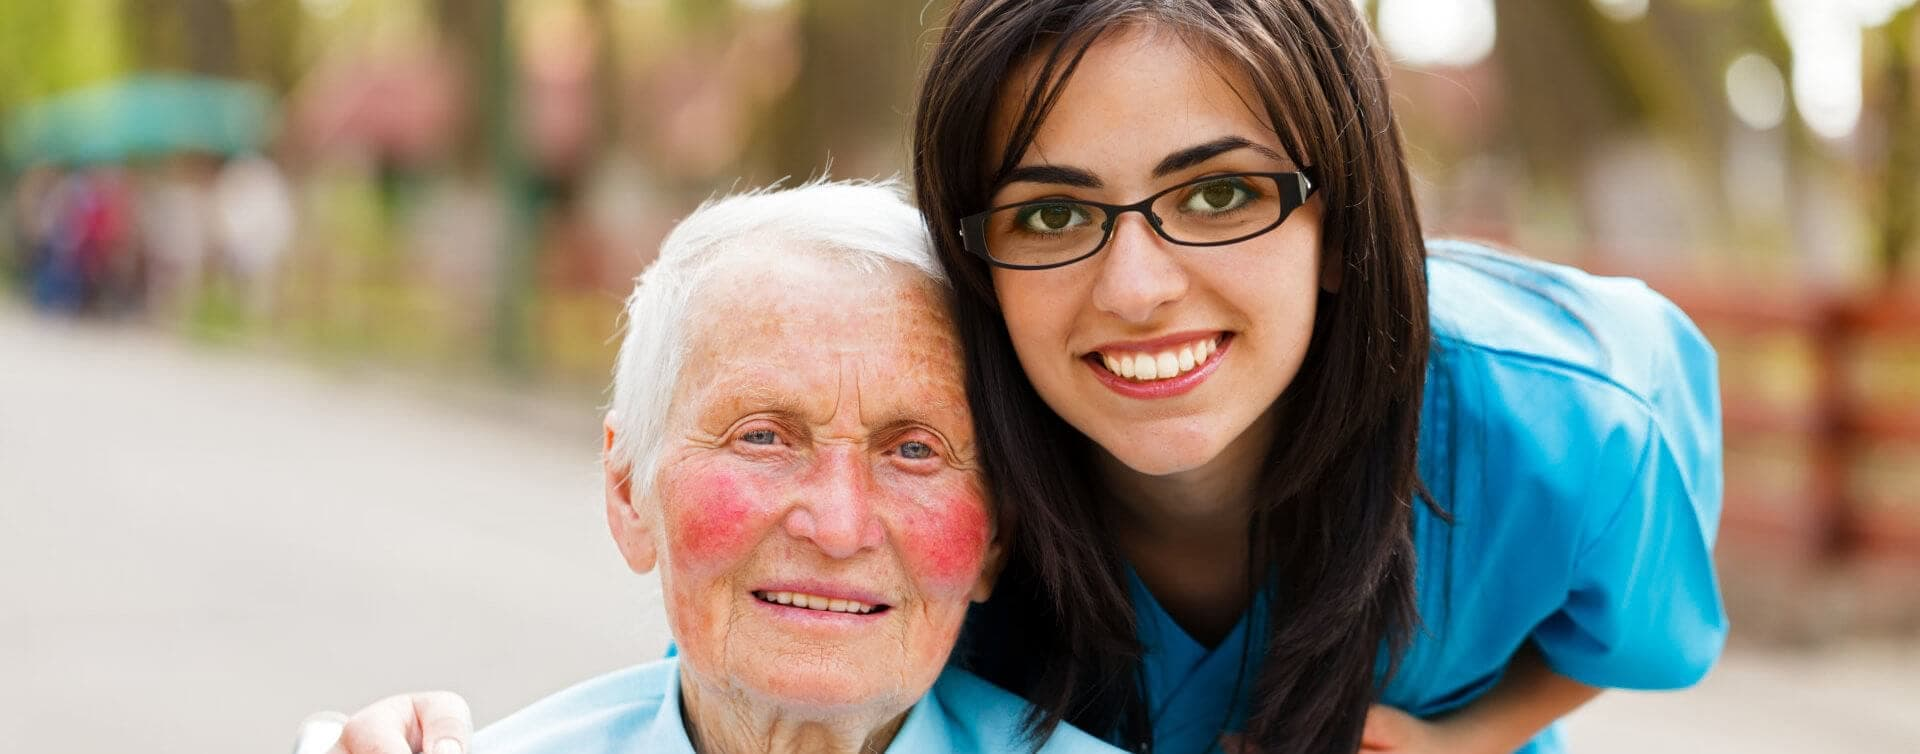 beautiful caregiver with glasses smiling with the elder woman